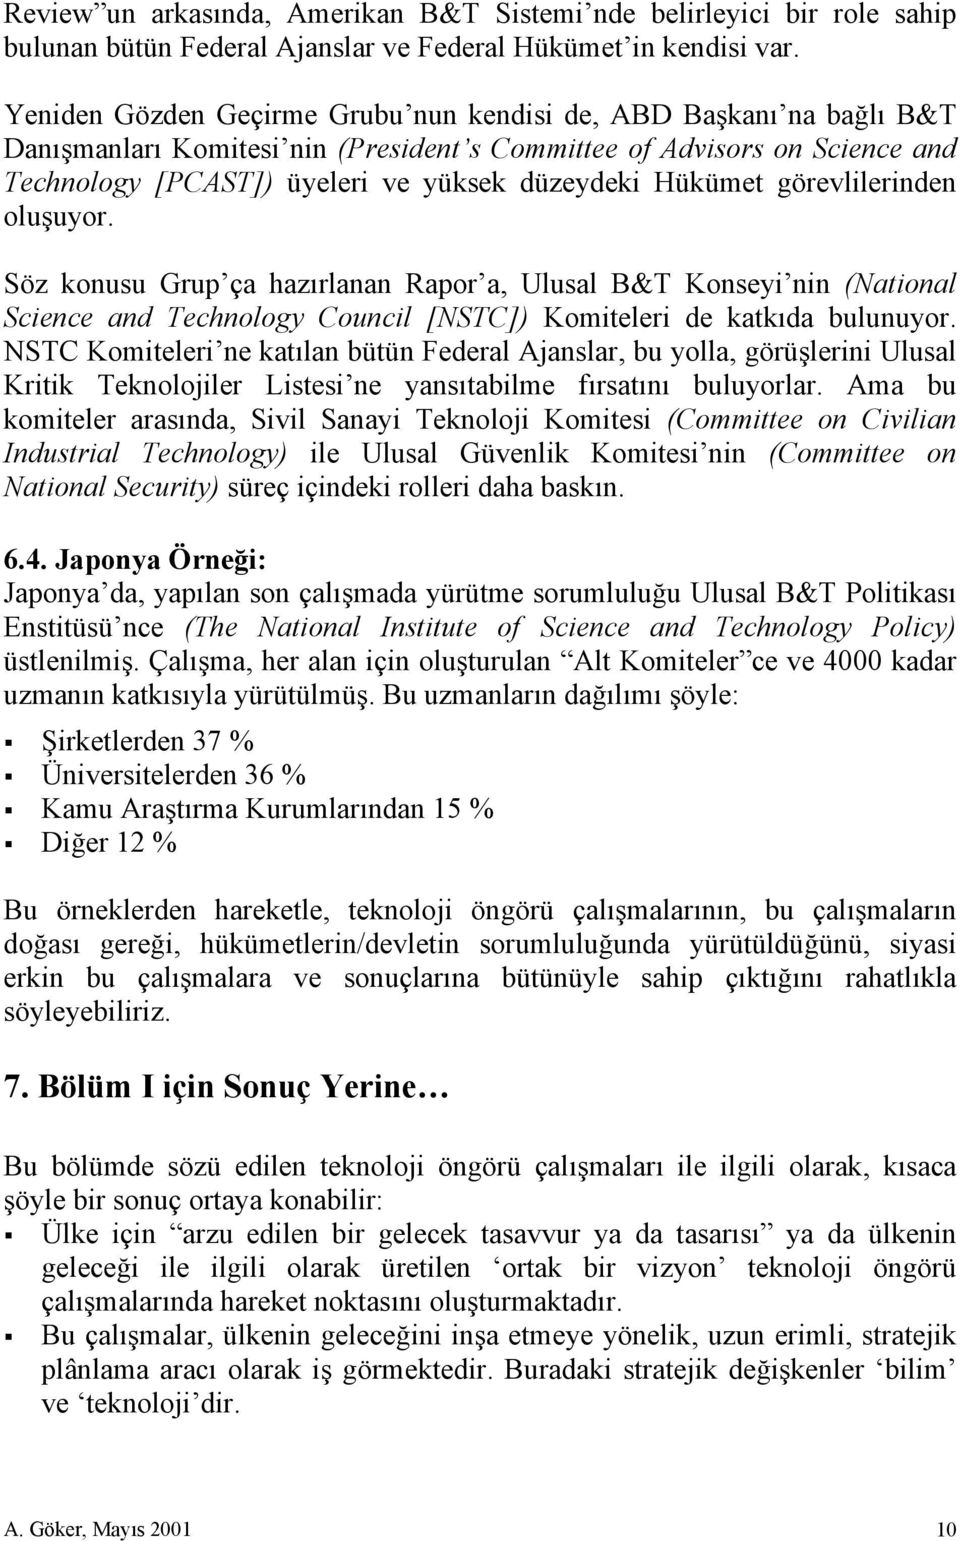 Hükümet görevlilerinden oluşuyor. Söz konusu Grup ça hazırlanan Rapor a, Ulusal B&T Konseyi nin (National Science and Technology Council [NSTC]) Komiteleri de katkıda bulunuyor.